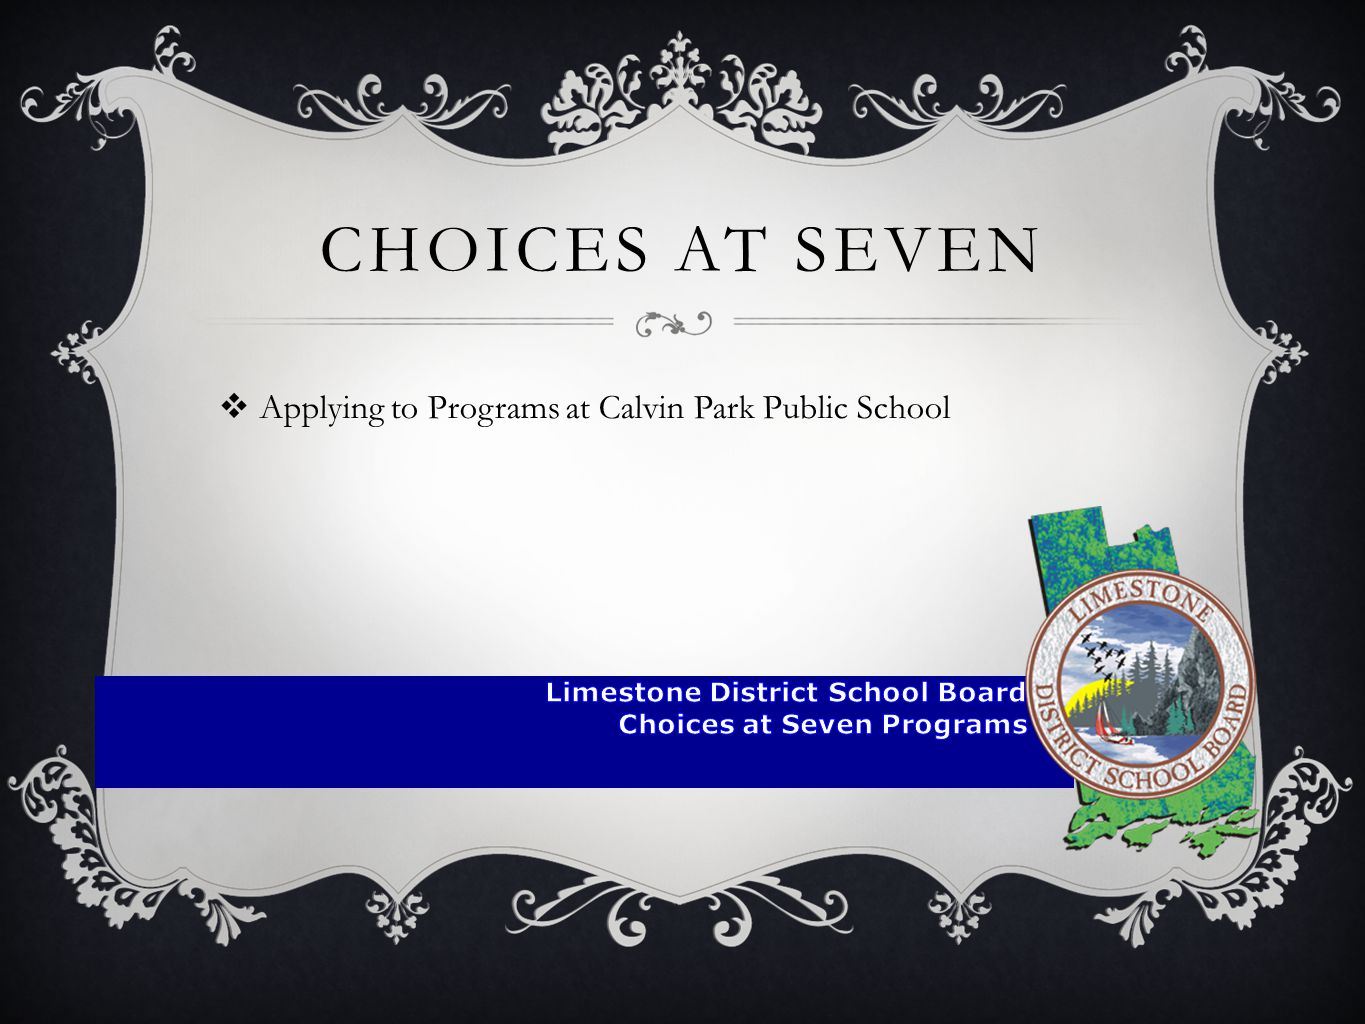 Limestone District School Board Choices at Seven Programs